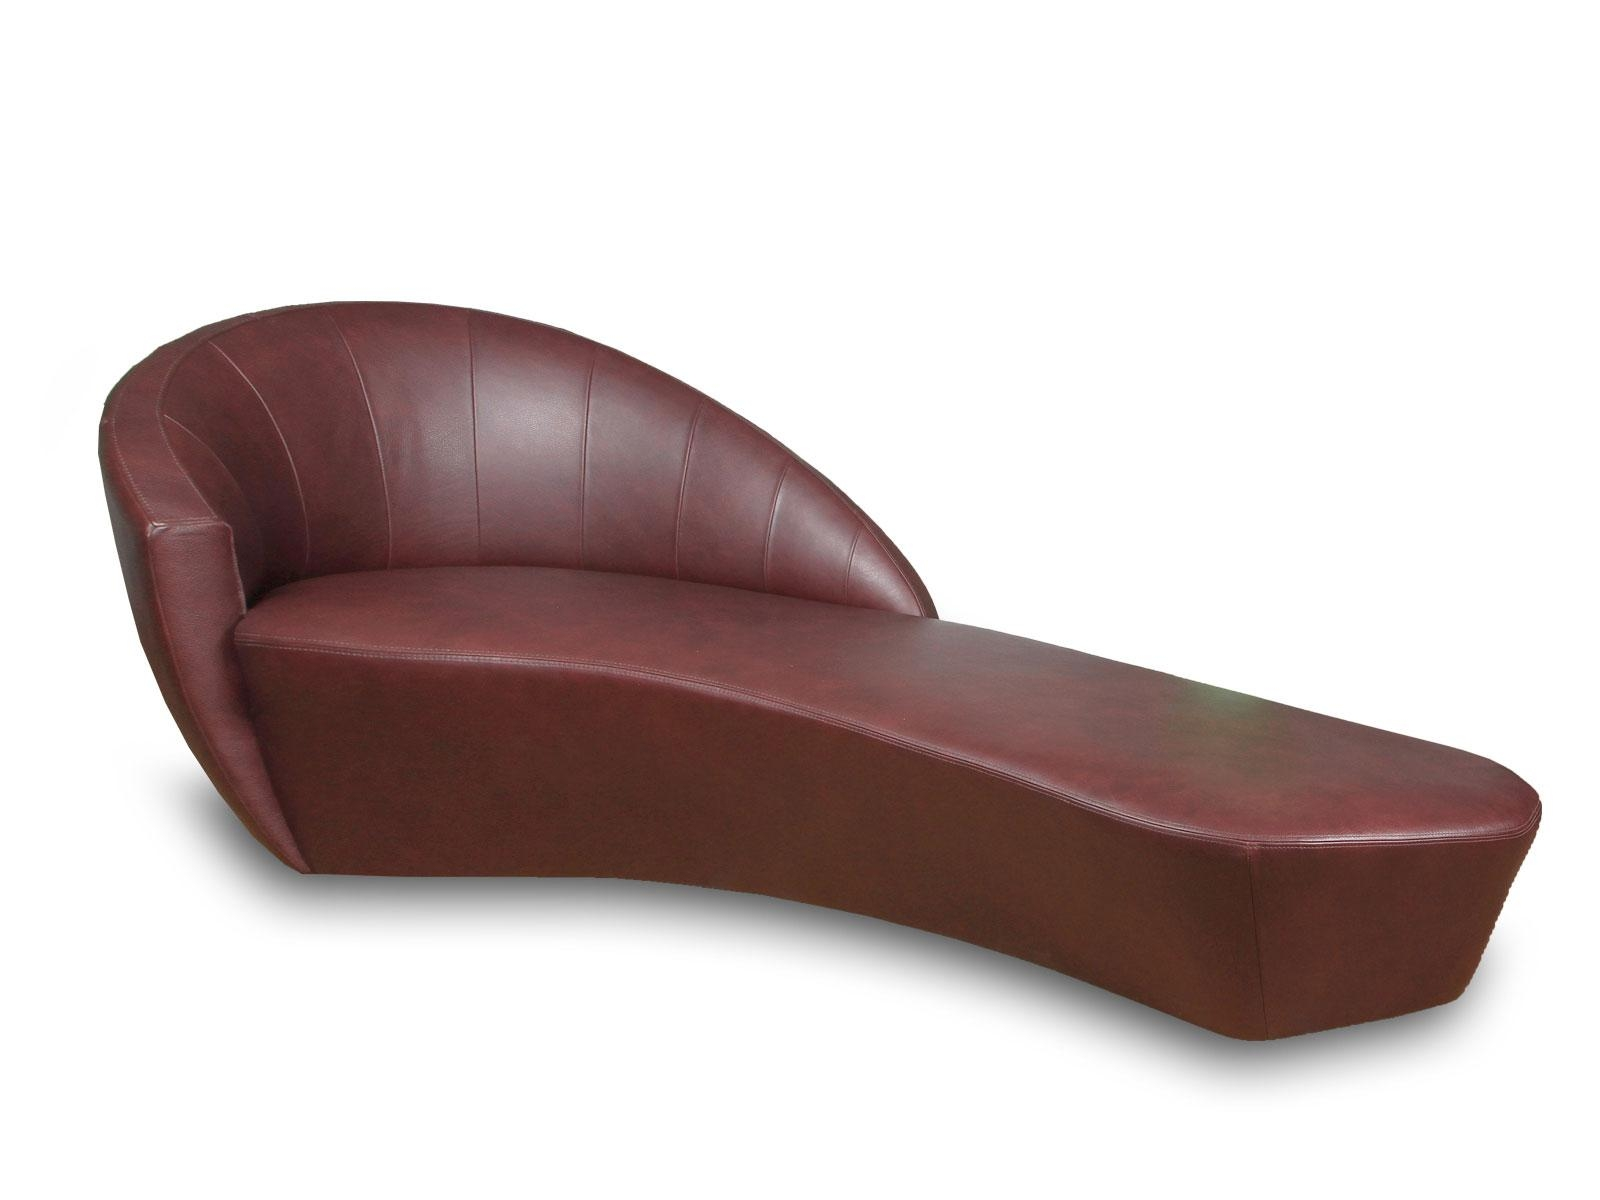 Furniture: Luxury Modern Chair Design With Leather Chaise For Lounge Sofas And Chairs (View 17 of 20)